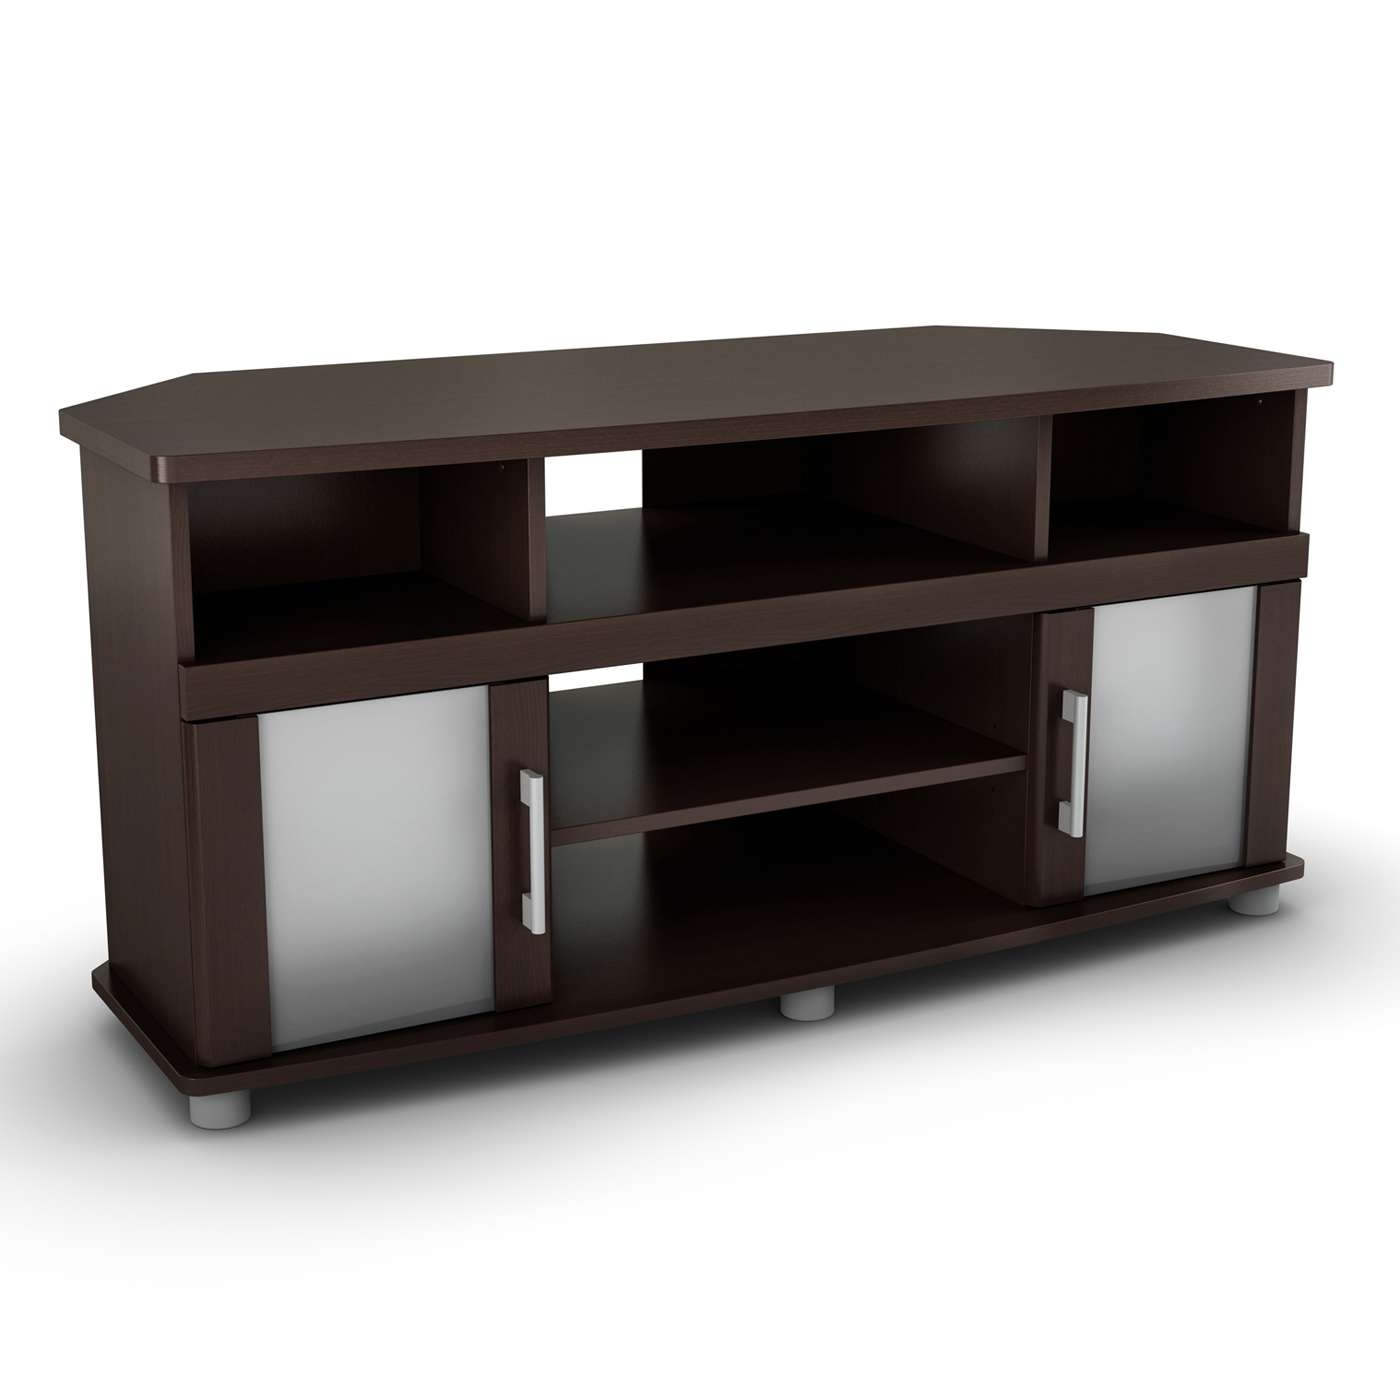 Corner Tv Stands | Lowe's Canada With Regard To Tv Stands For Corners (View 20 of 20)